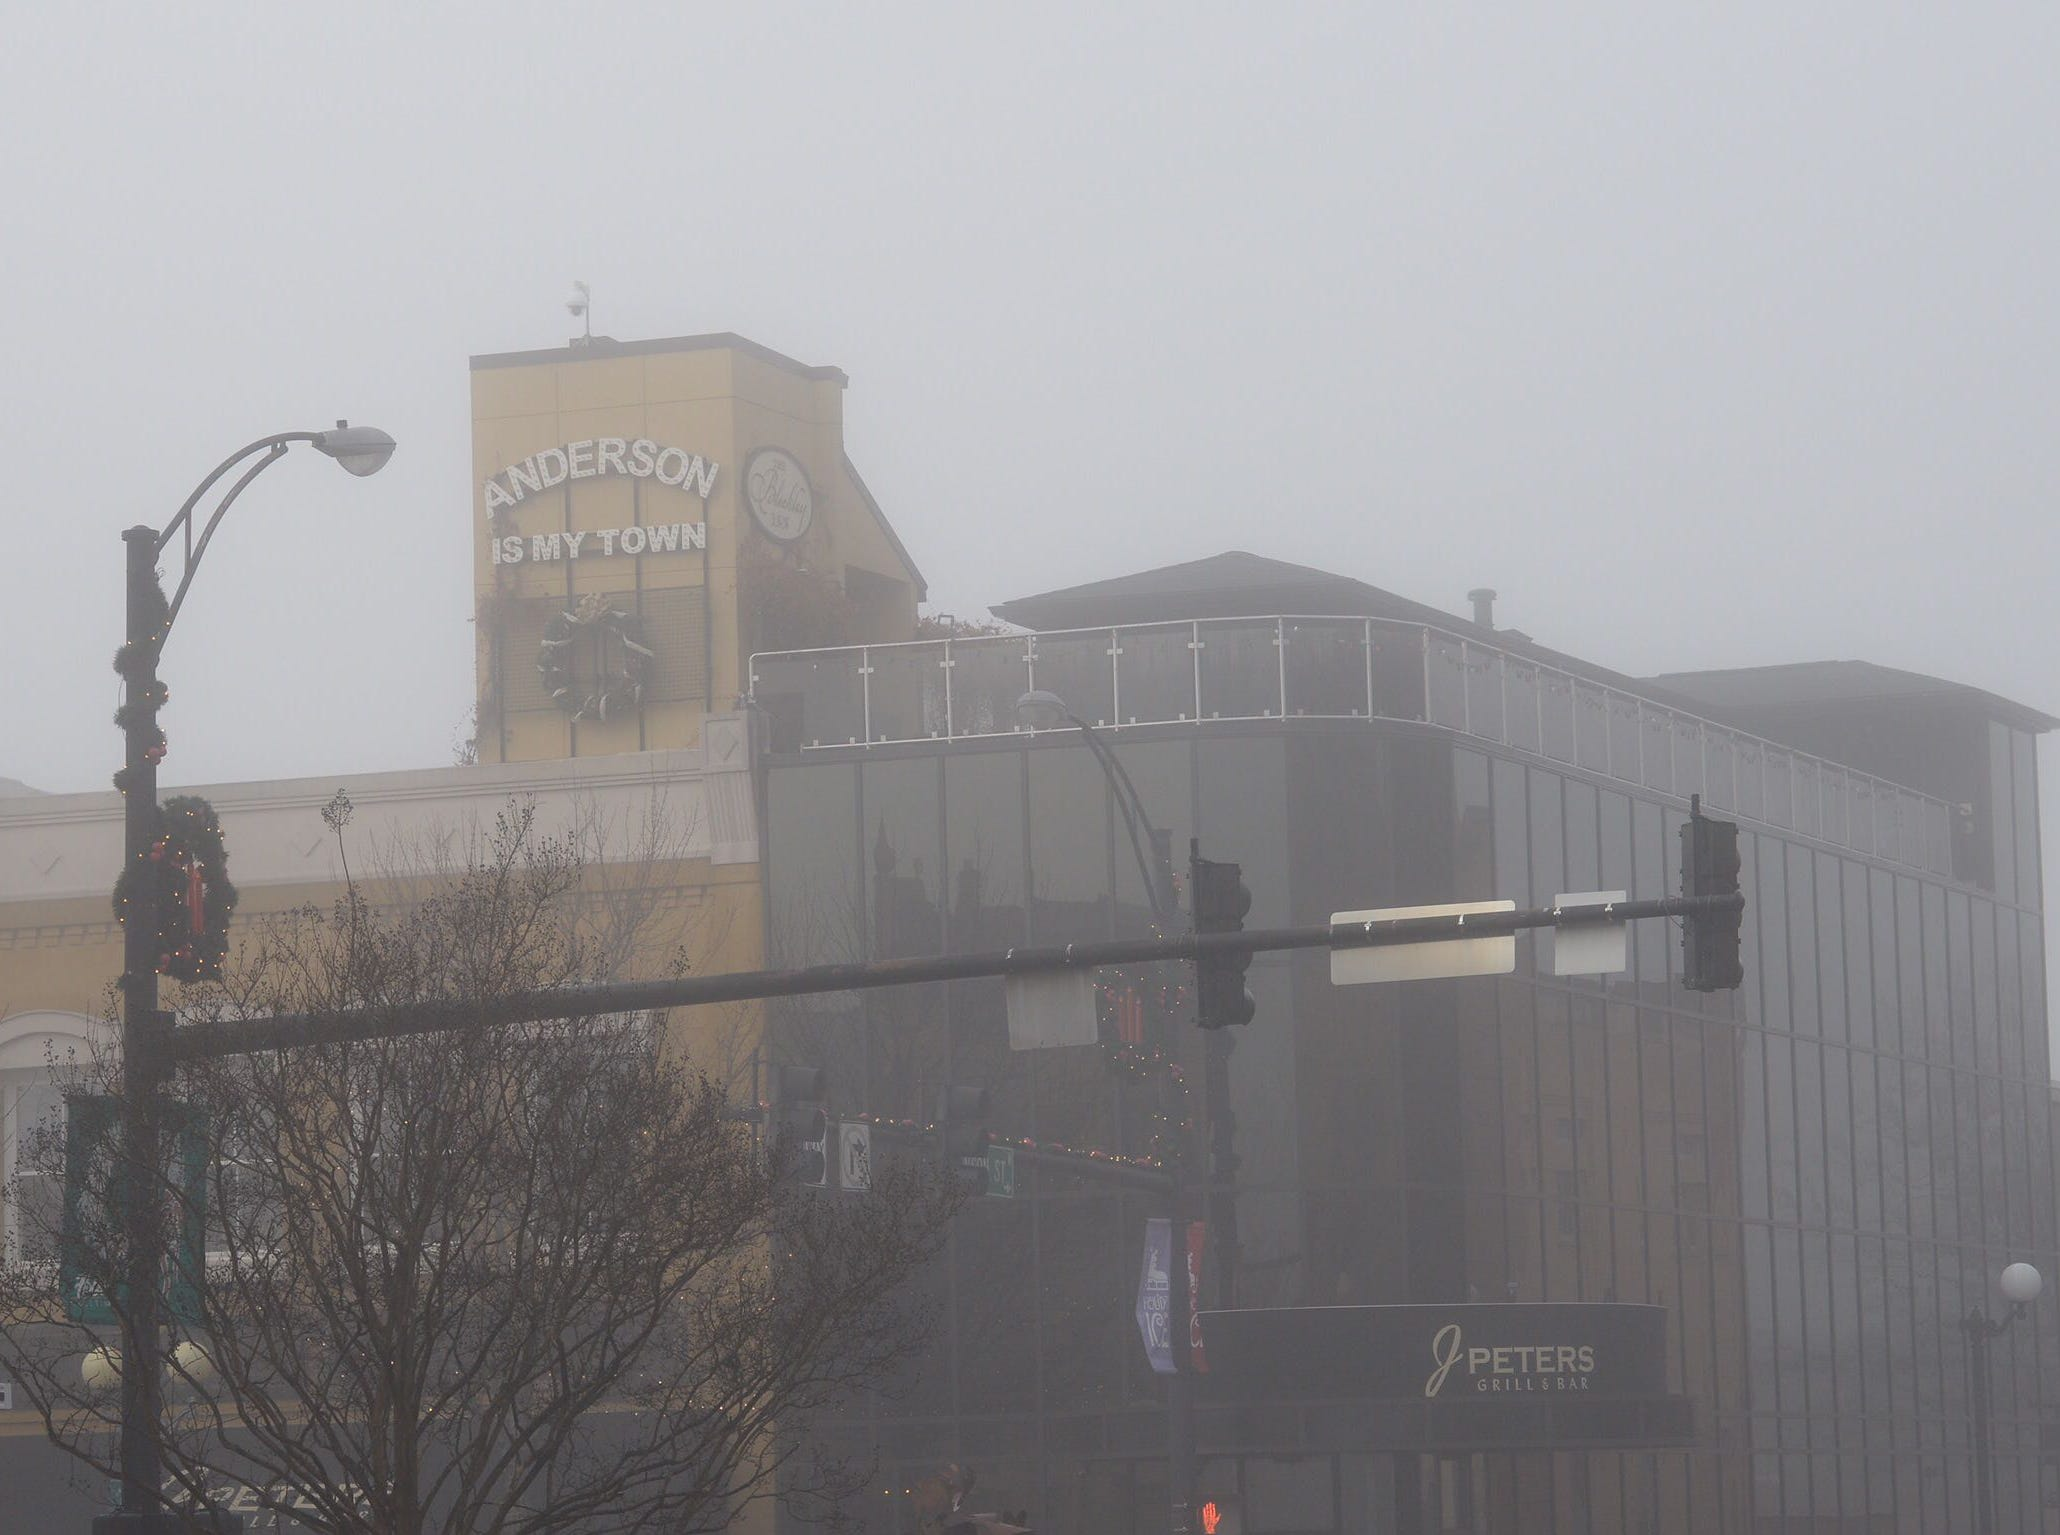 The building that houses J Peters restaurant in downtown Anderson on Tuesday, Dec. 11, 2018.